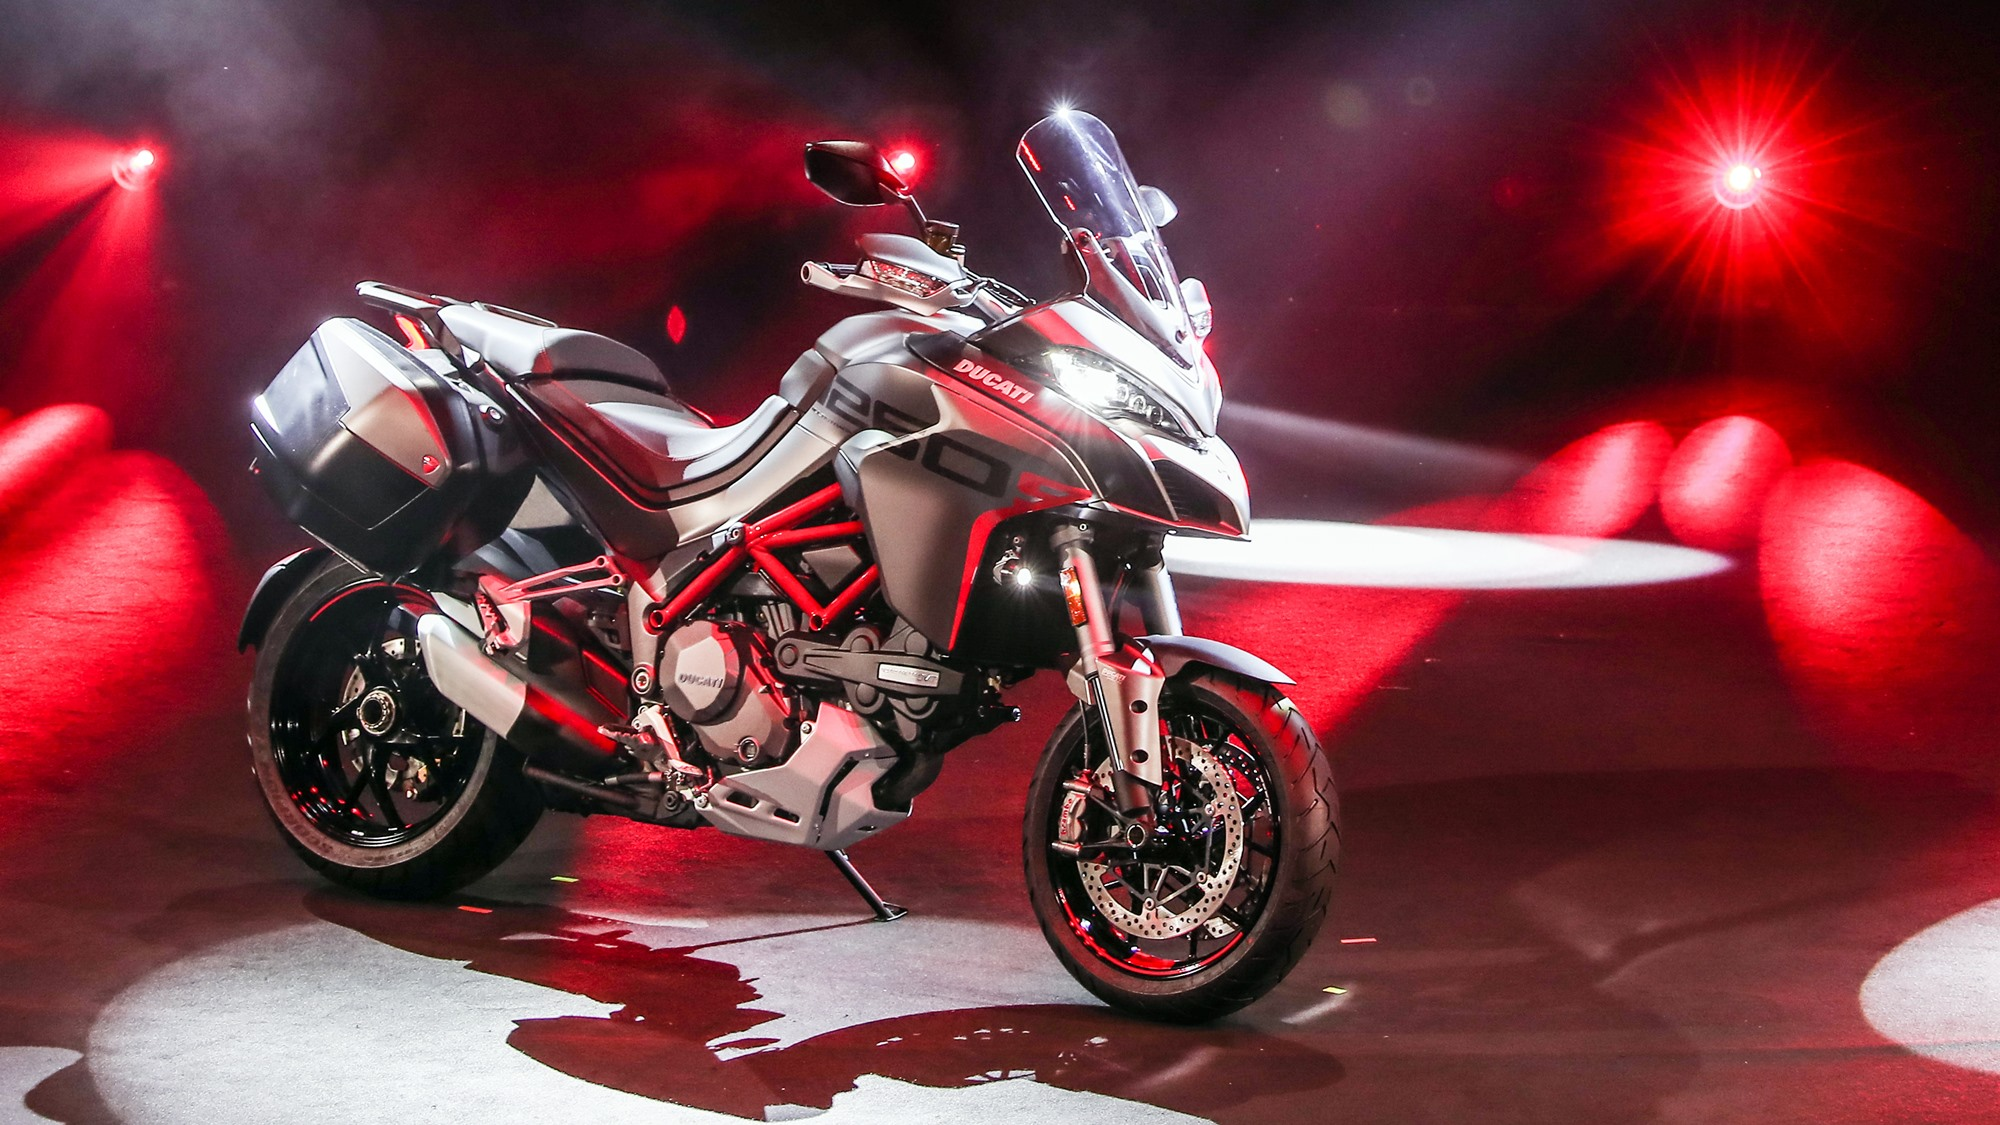 2020 Ducati Multistrada 1260 S Grand Tour HD wallpaper